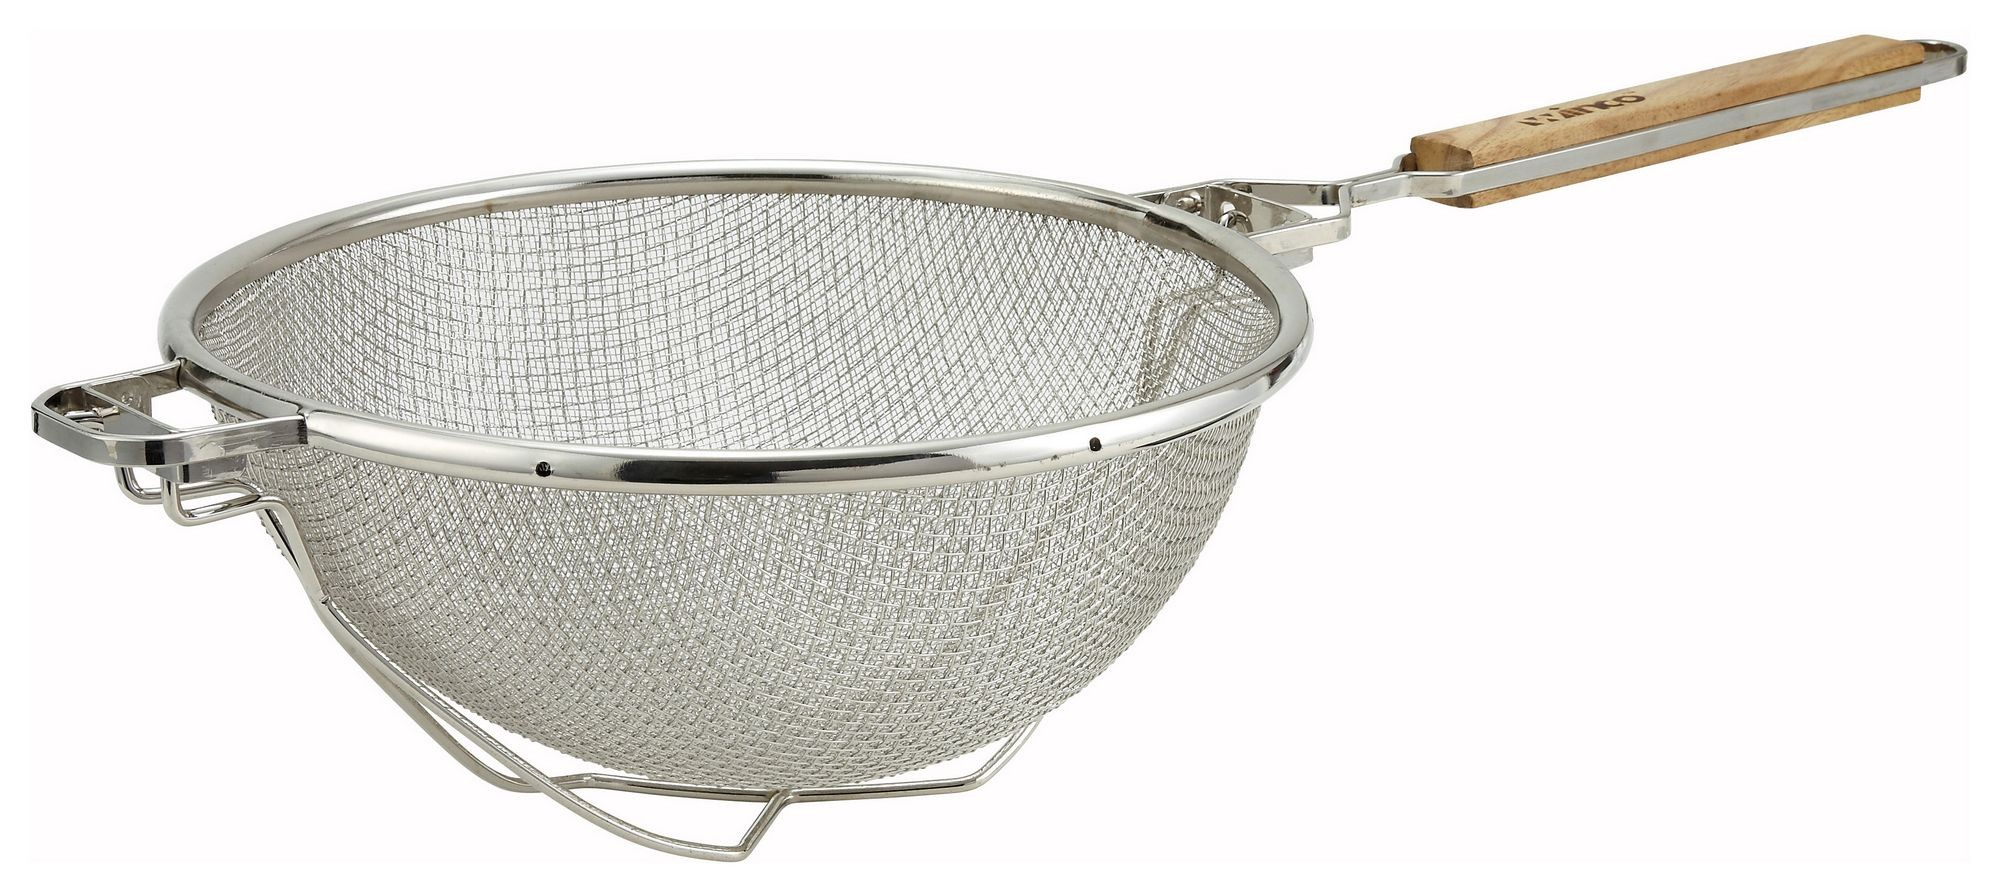 Winco mst-10rb Double Mesh Strainer with Reinforced Bowl 10-1/2""